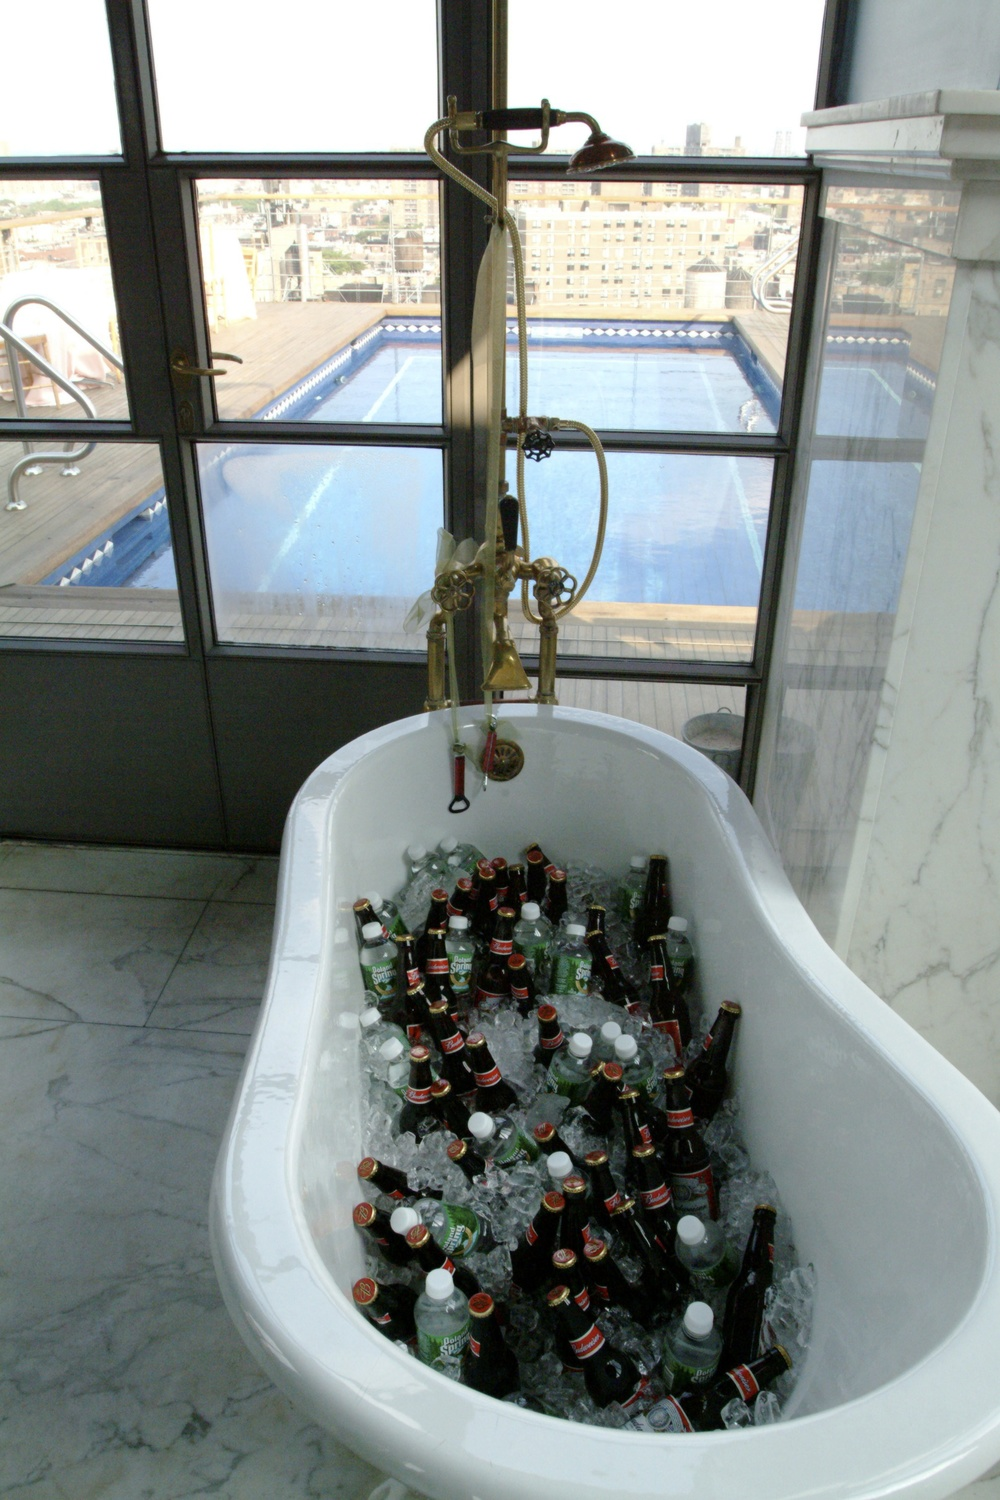 Beers in the tub!